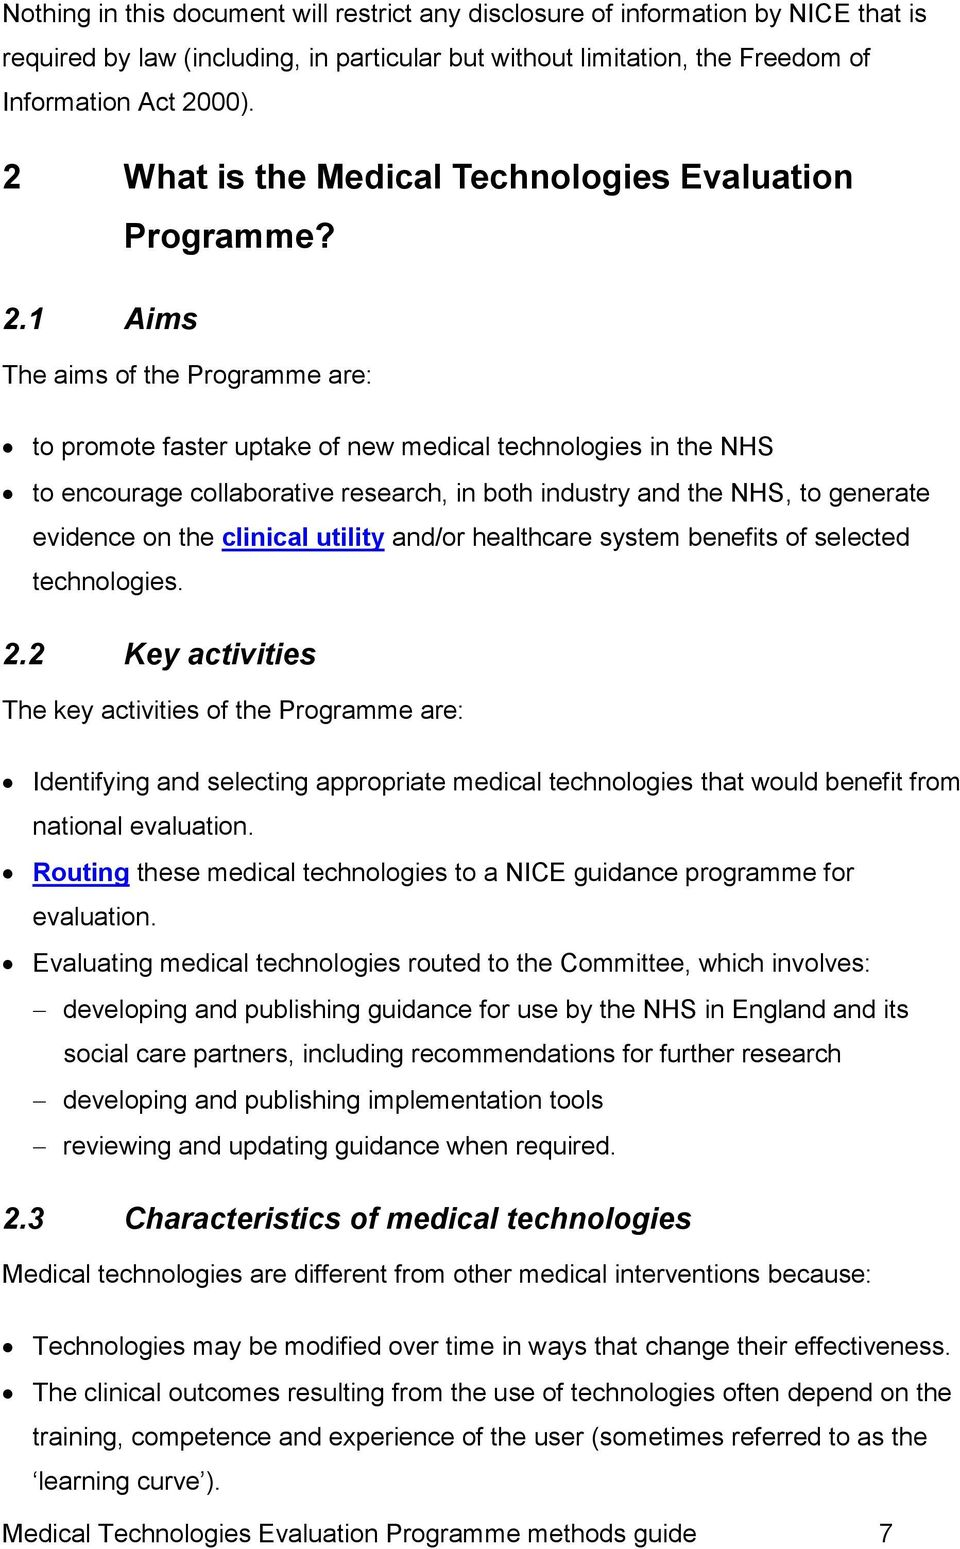 1 Aims The aims of the Programme are: to promote faster uptake of new medical technologies in the NHS to encourage collaborative research, in both industry and the NHS, to generate evidence on the